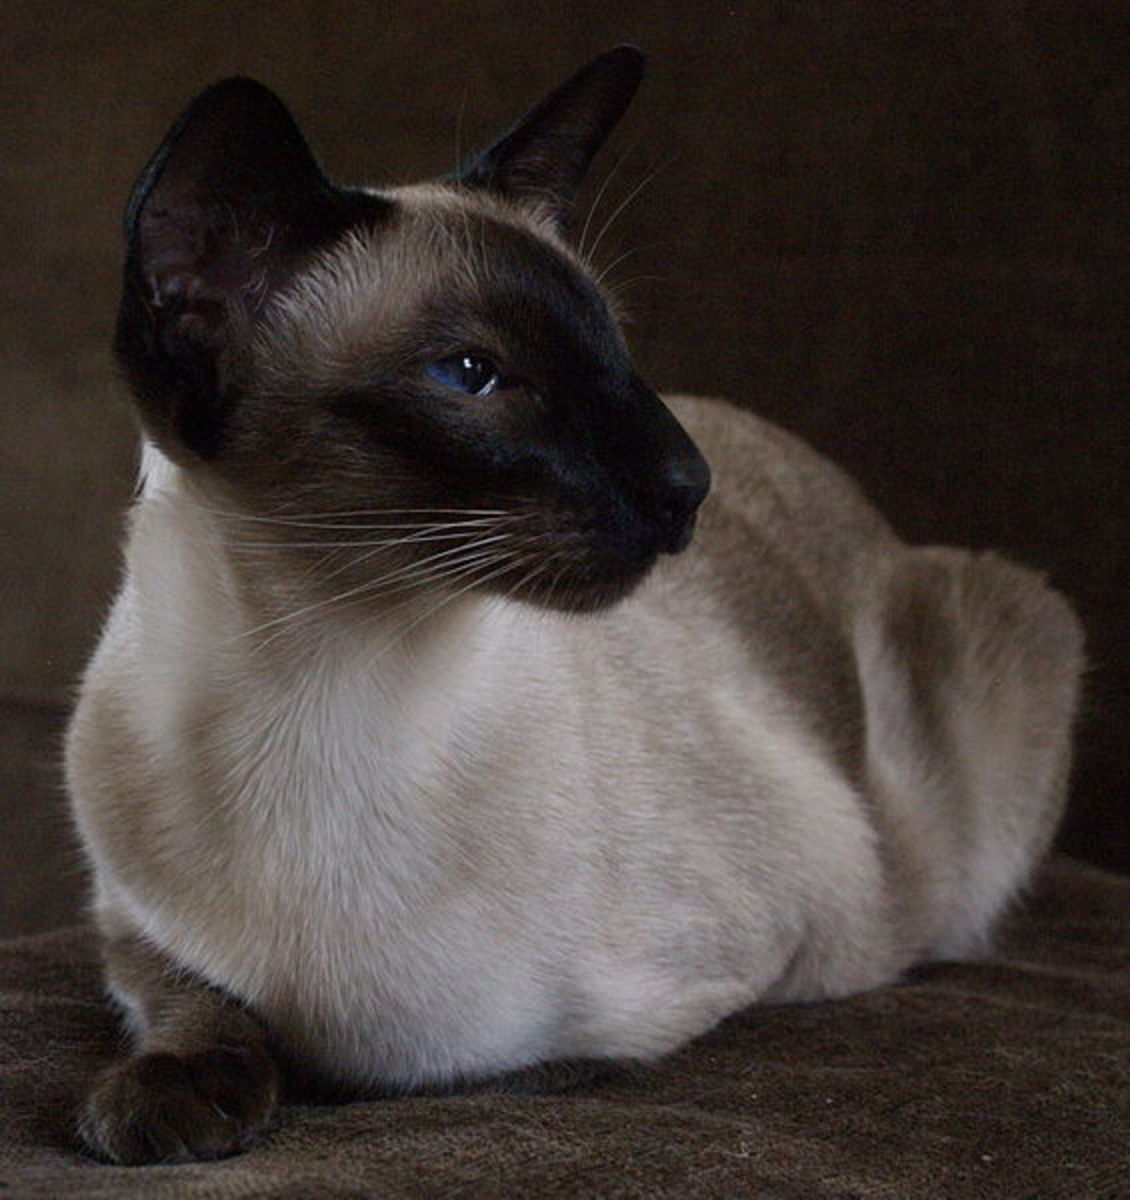 Darker-colored fur on the extremities (points) is a signature trait of Siamese cats. In addition, the most attractive part of Siamese cats are the eyes that are almond shape and at an angle.